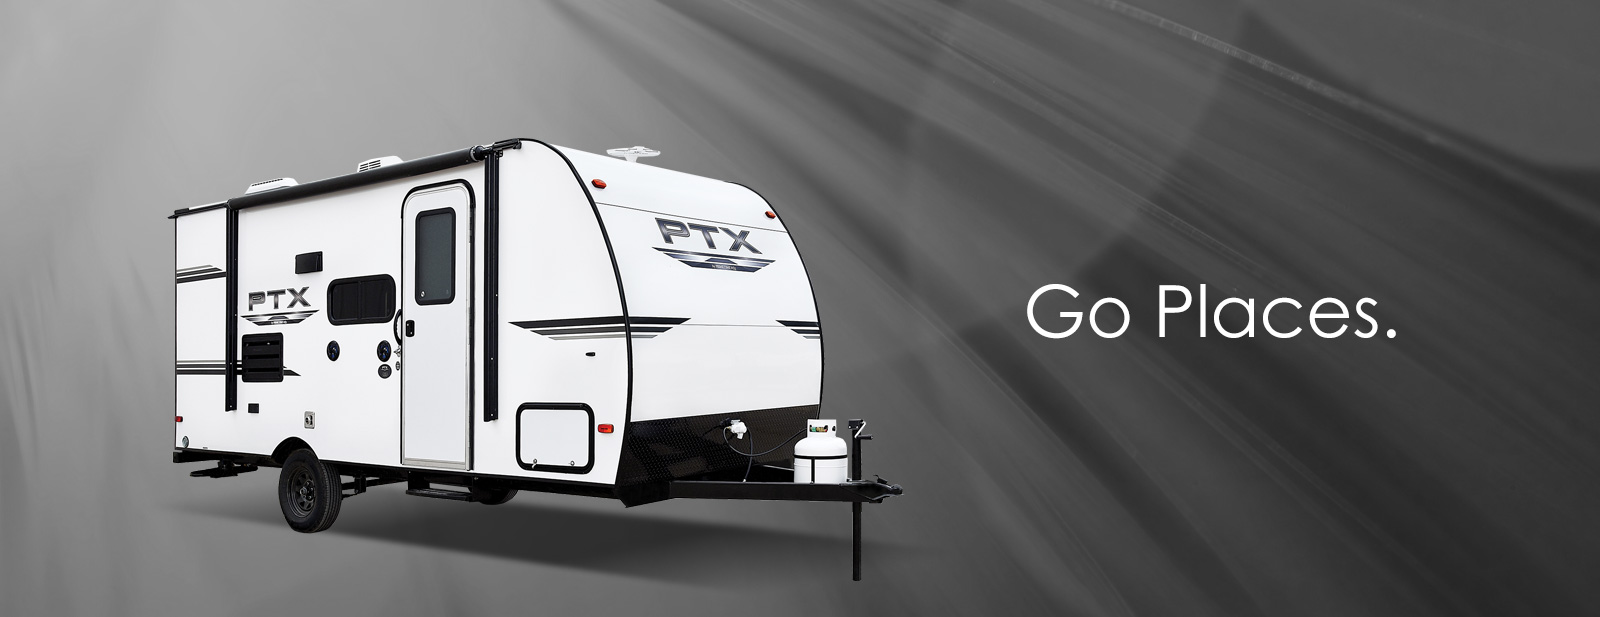 PTX | Prime Time Manufacturing - Manufacturer of Travel Trailers